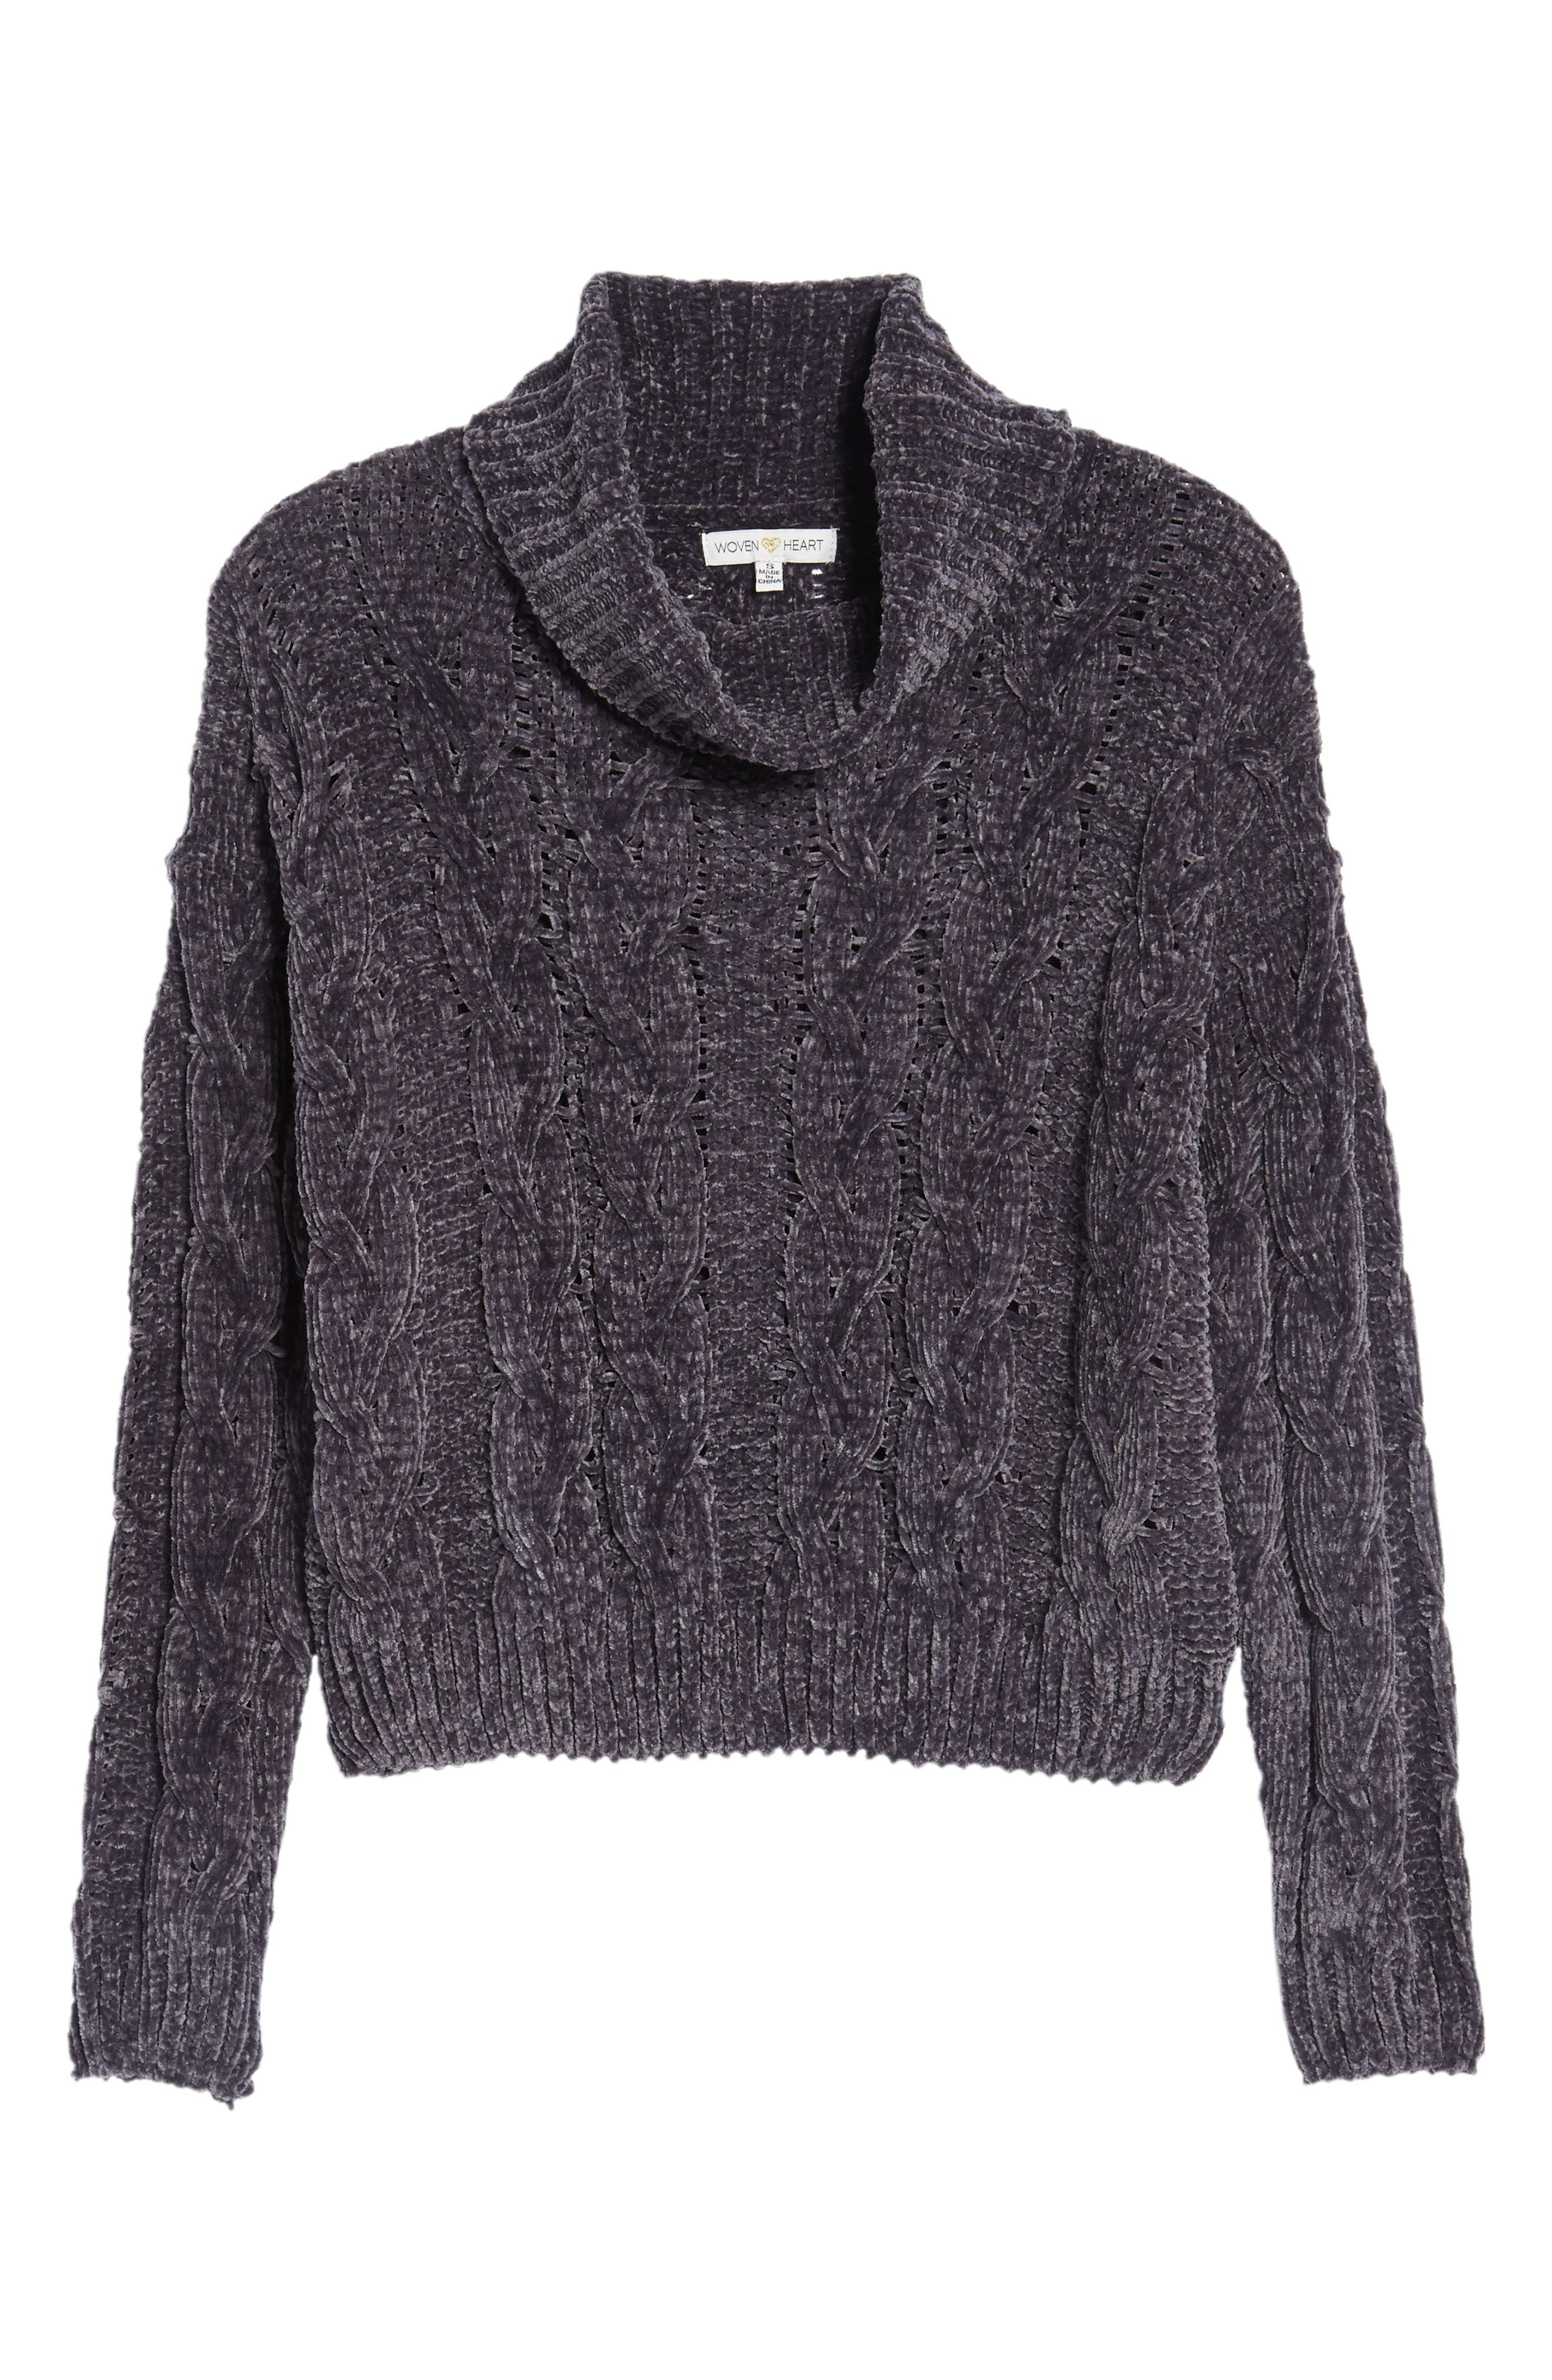 Chenille Turtleneck Sweater,                             Alternate thumbnail 6, color,                             020